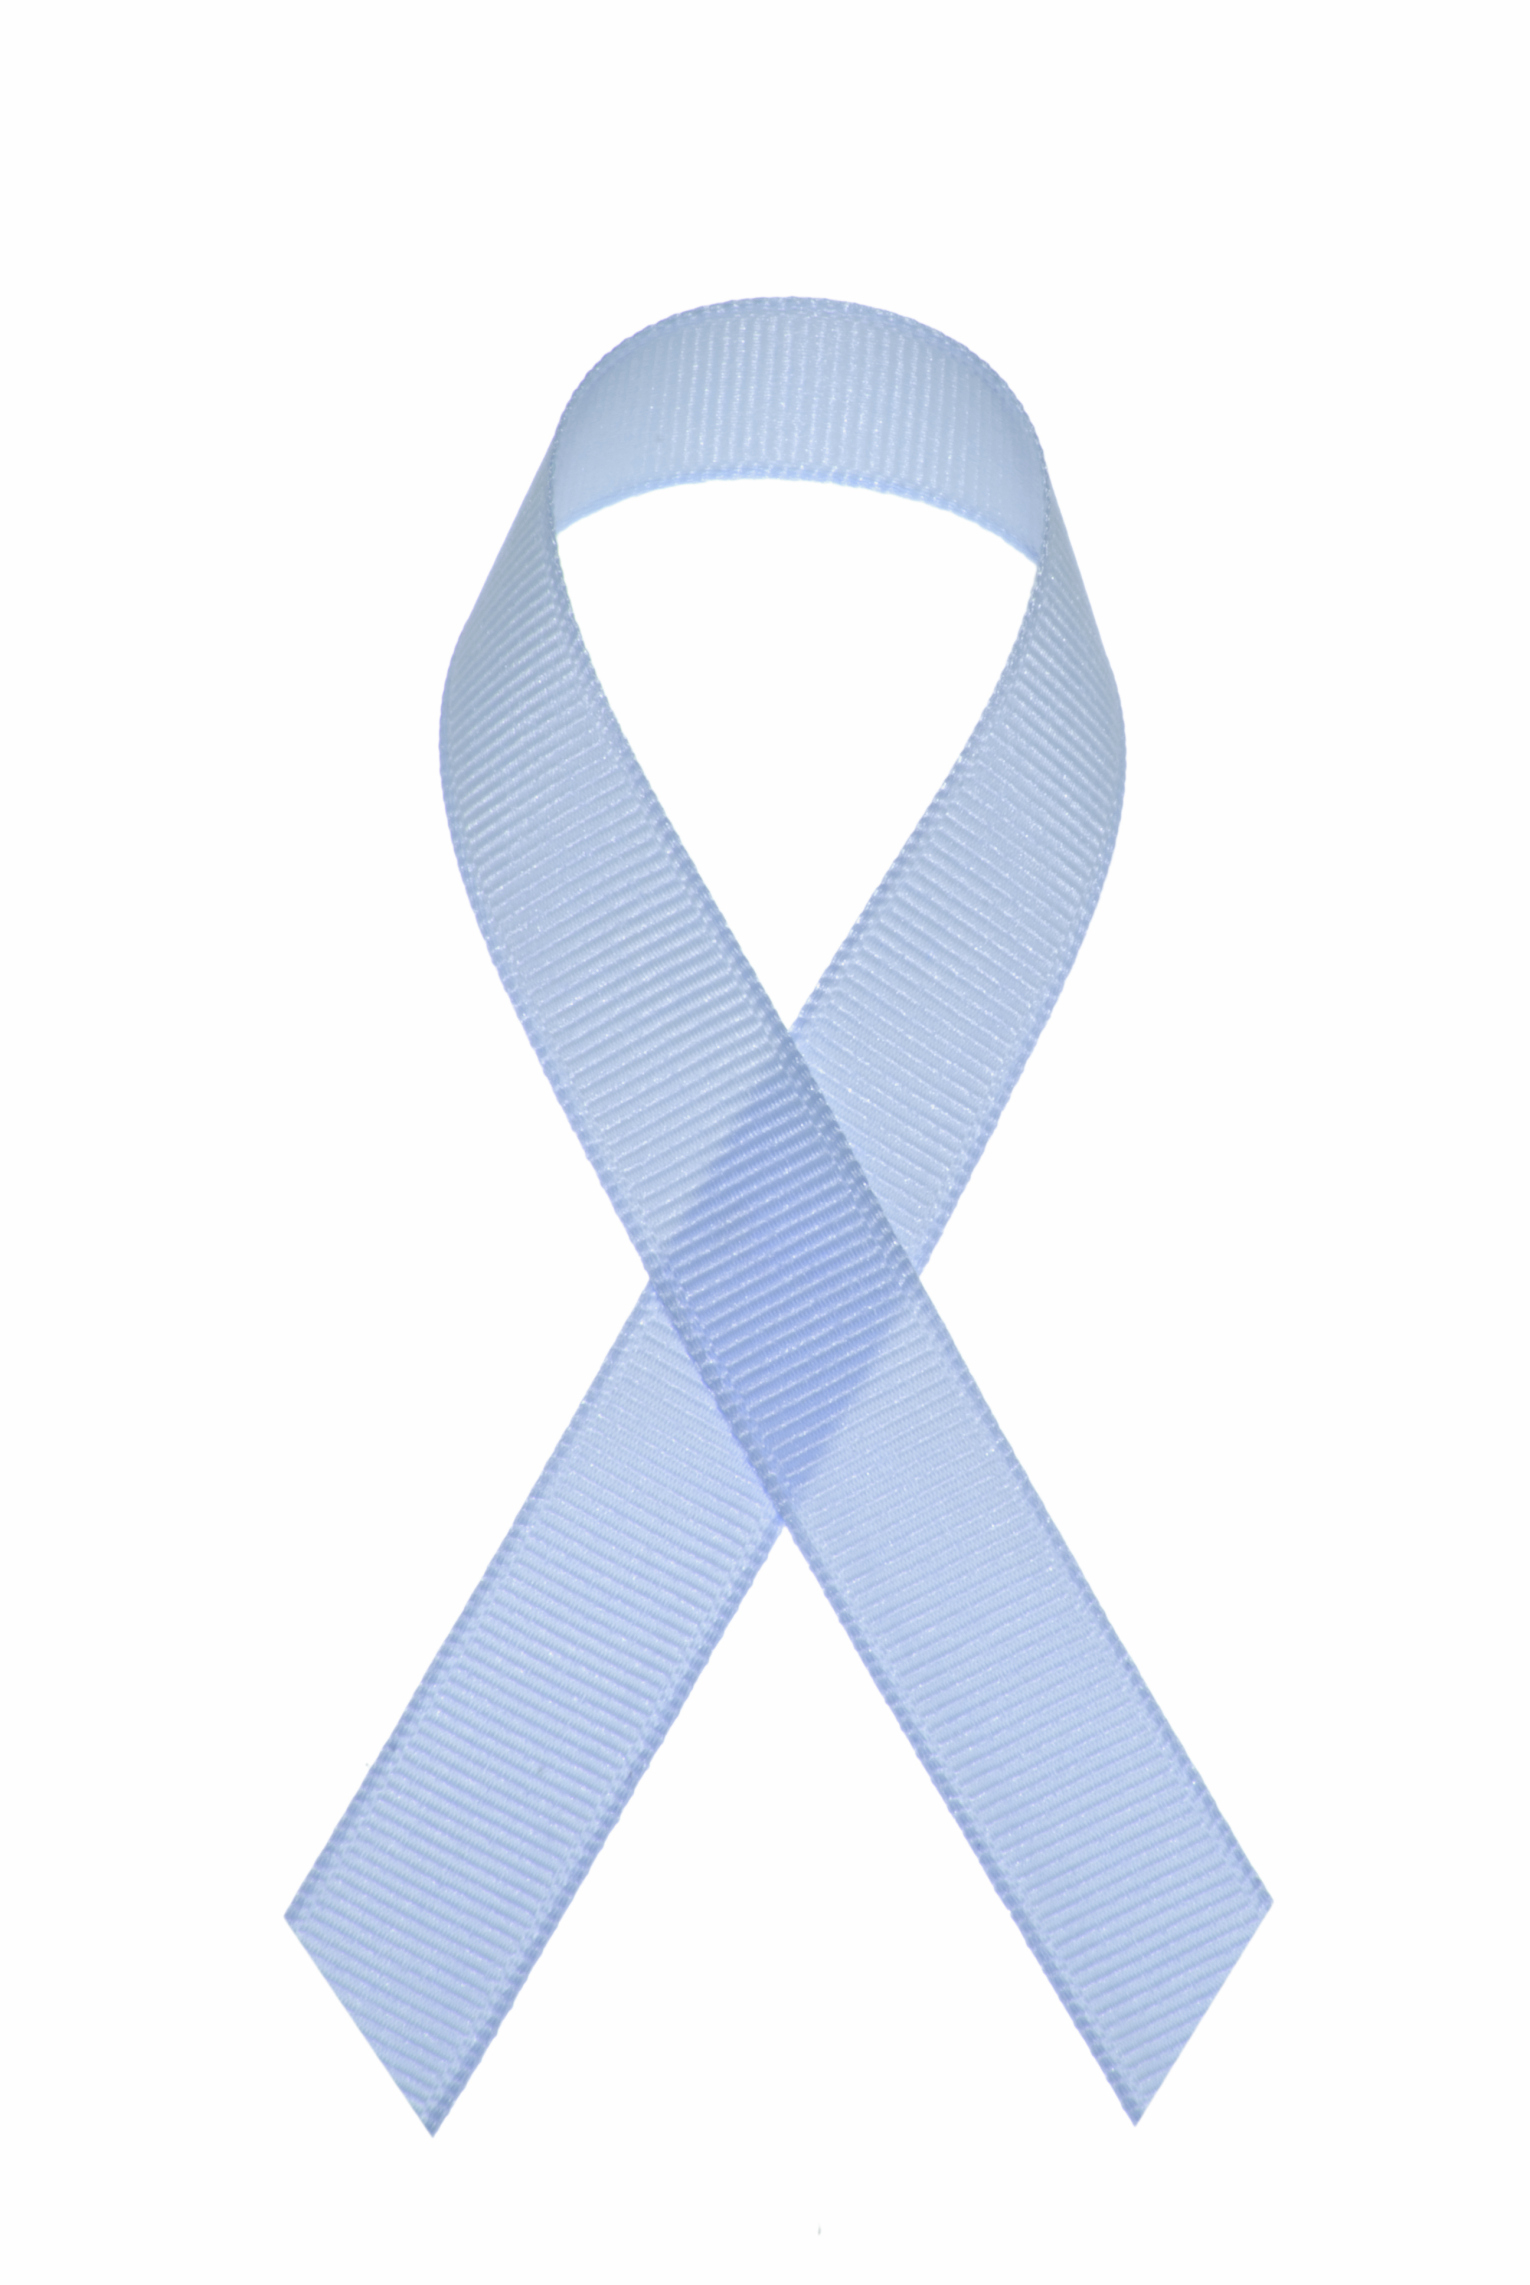 Photo of Knowing about prostate cancer